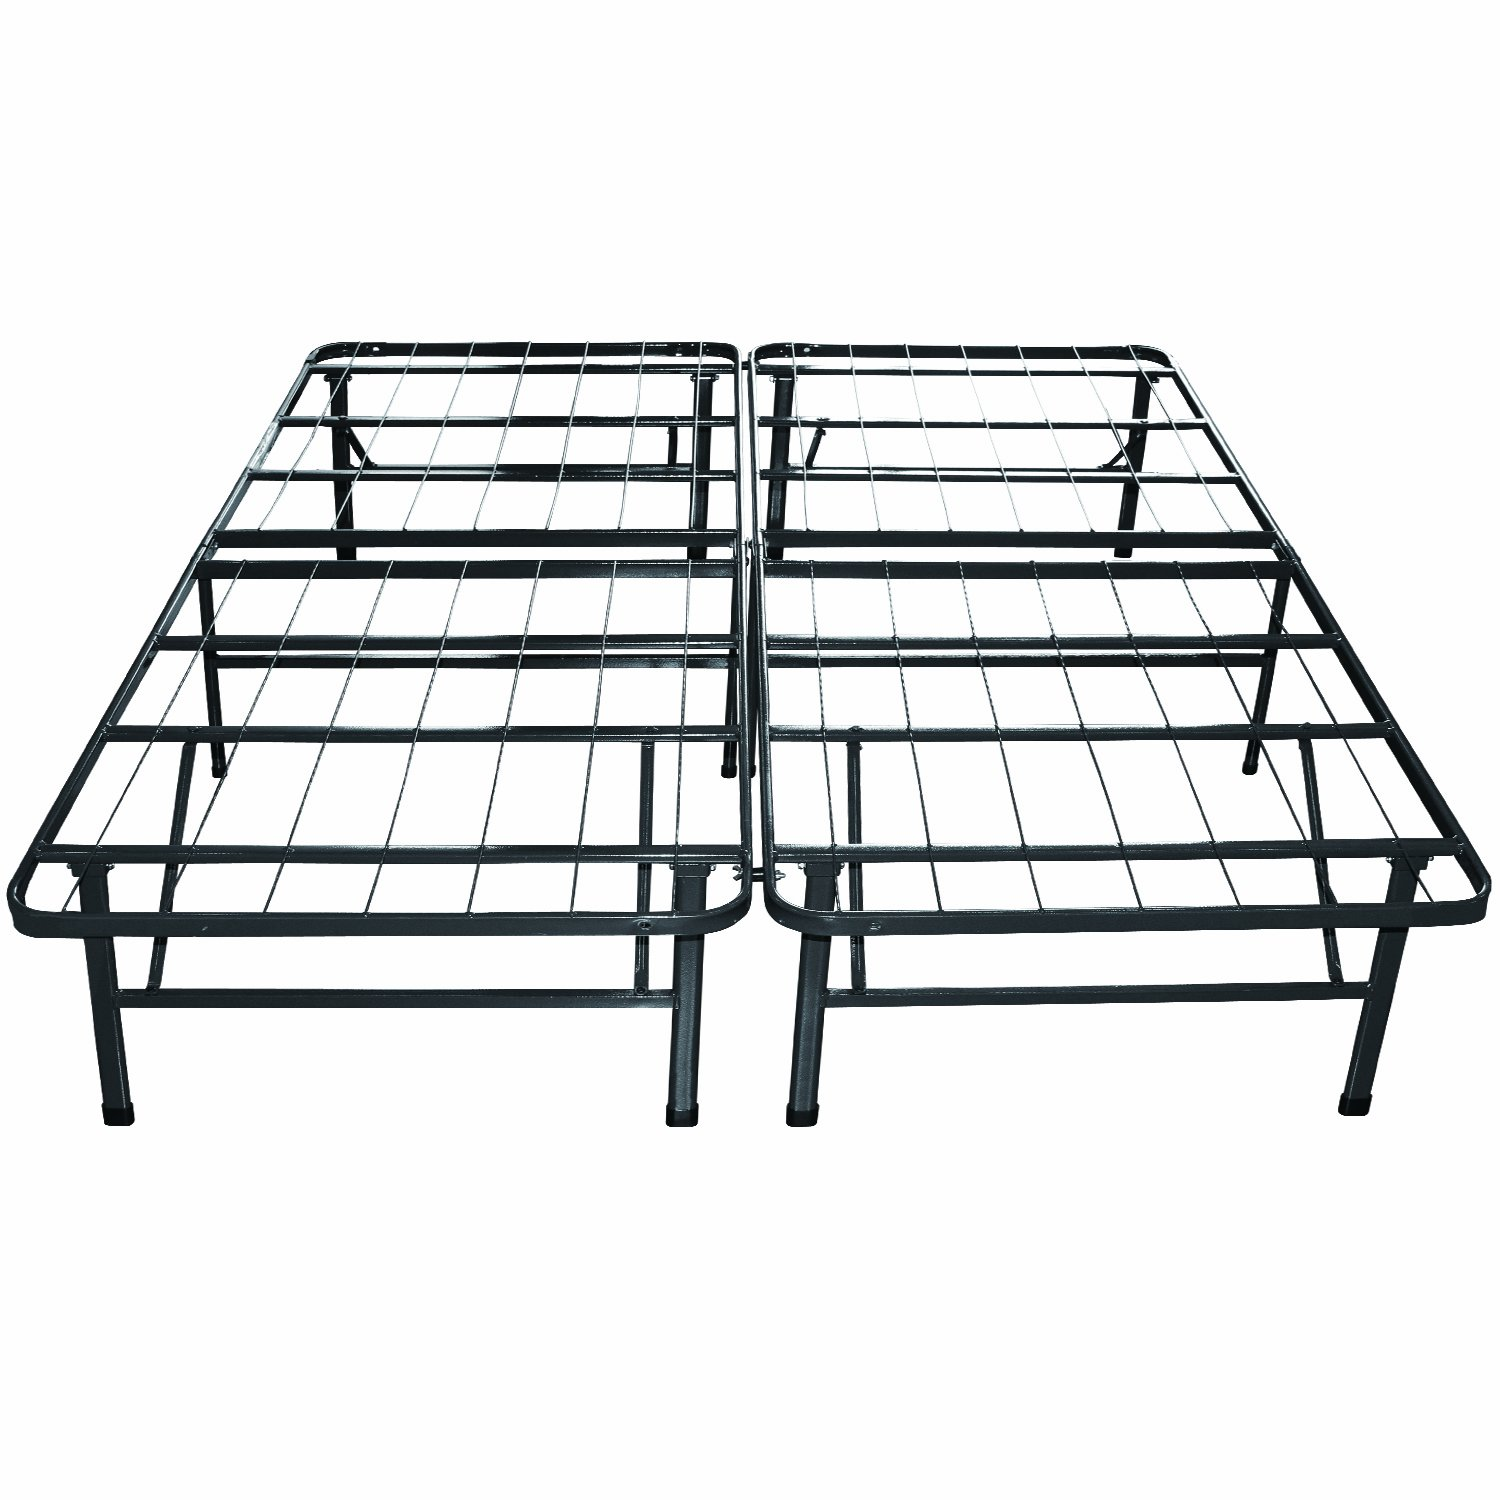 king sleep master platform metal bed frame mattress foundation free shipping ebay. Black Bedroom Furniture Sets. Home Design Ideas